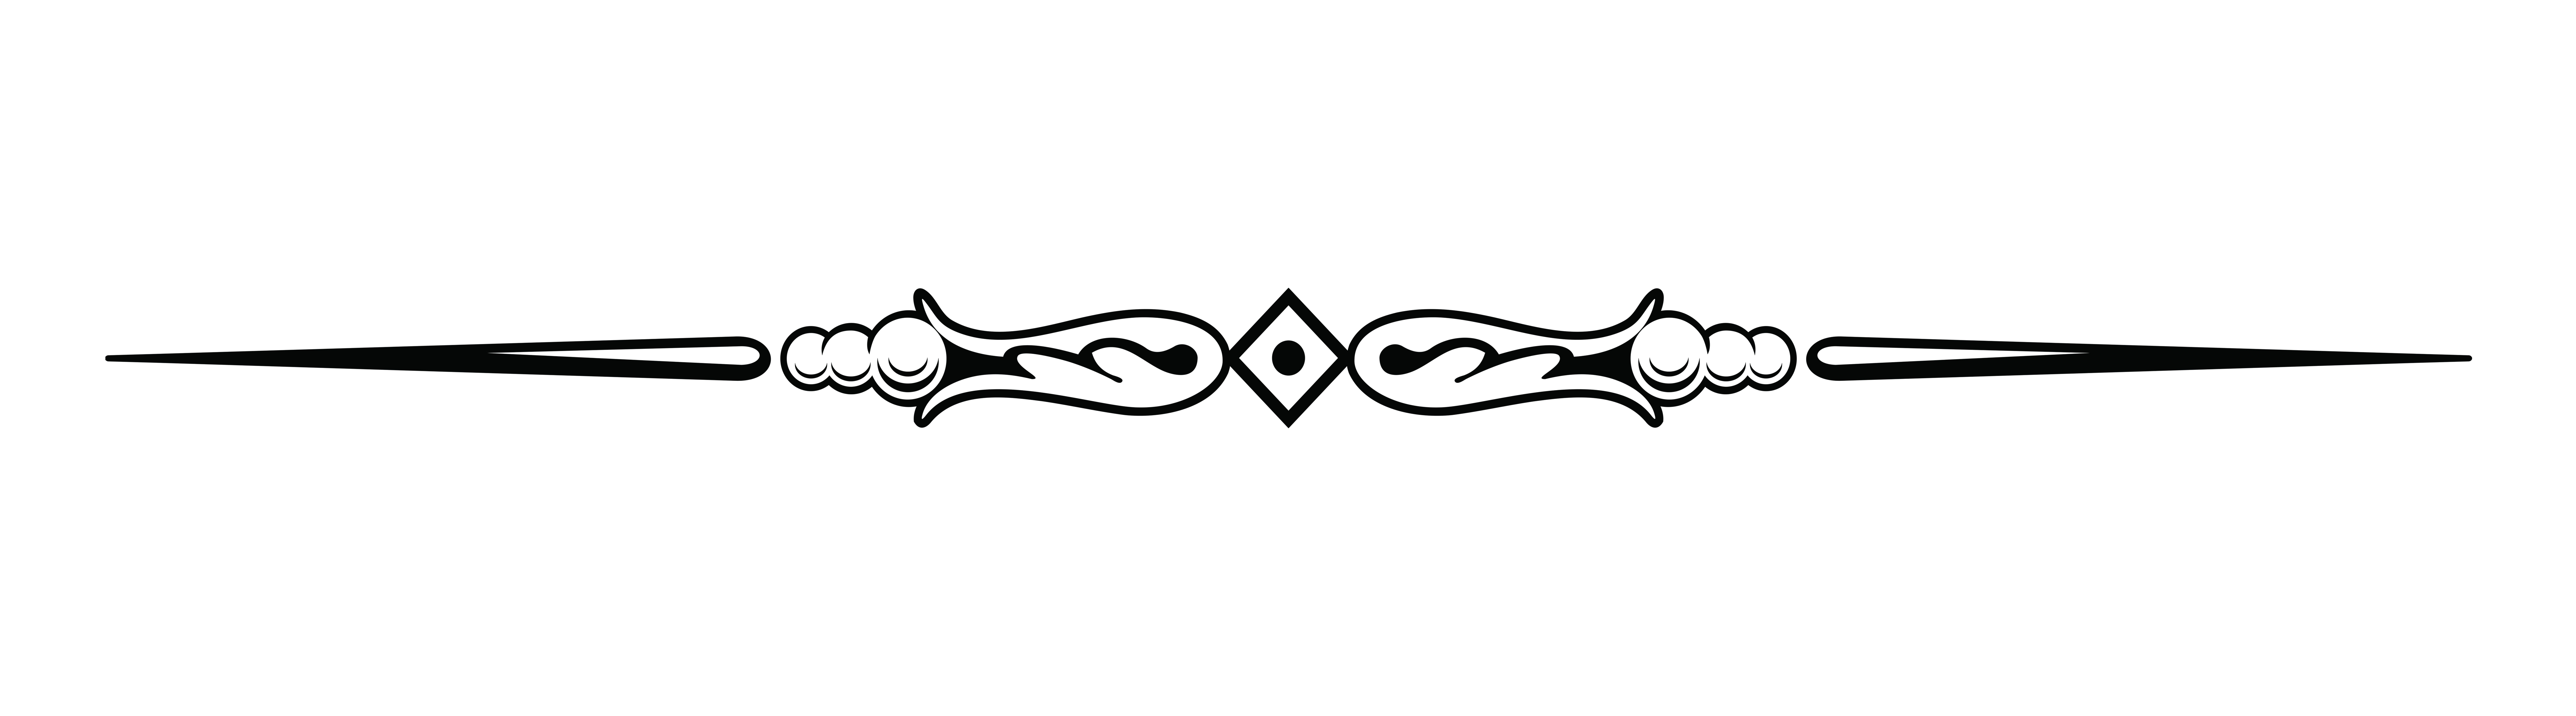 Divider Clipart Png.